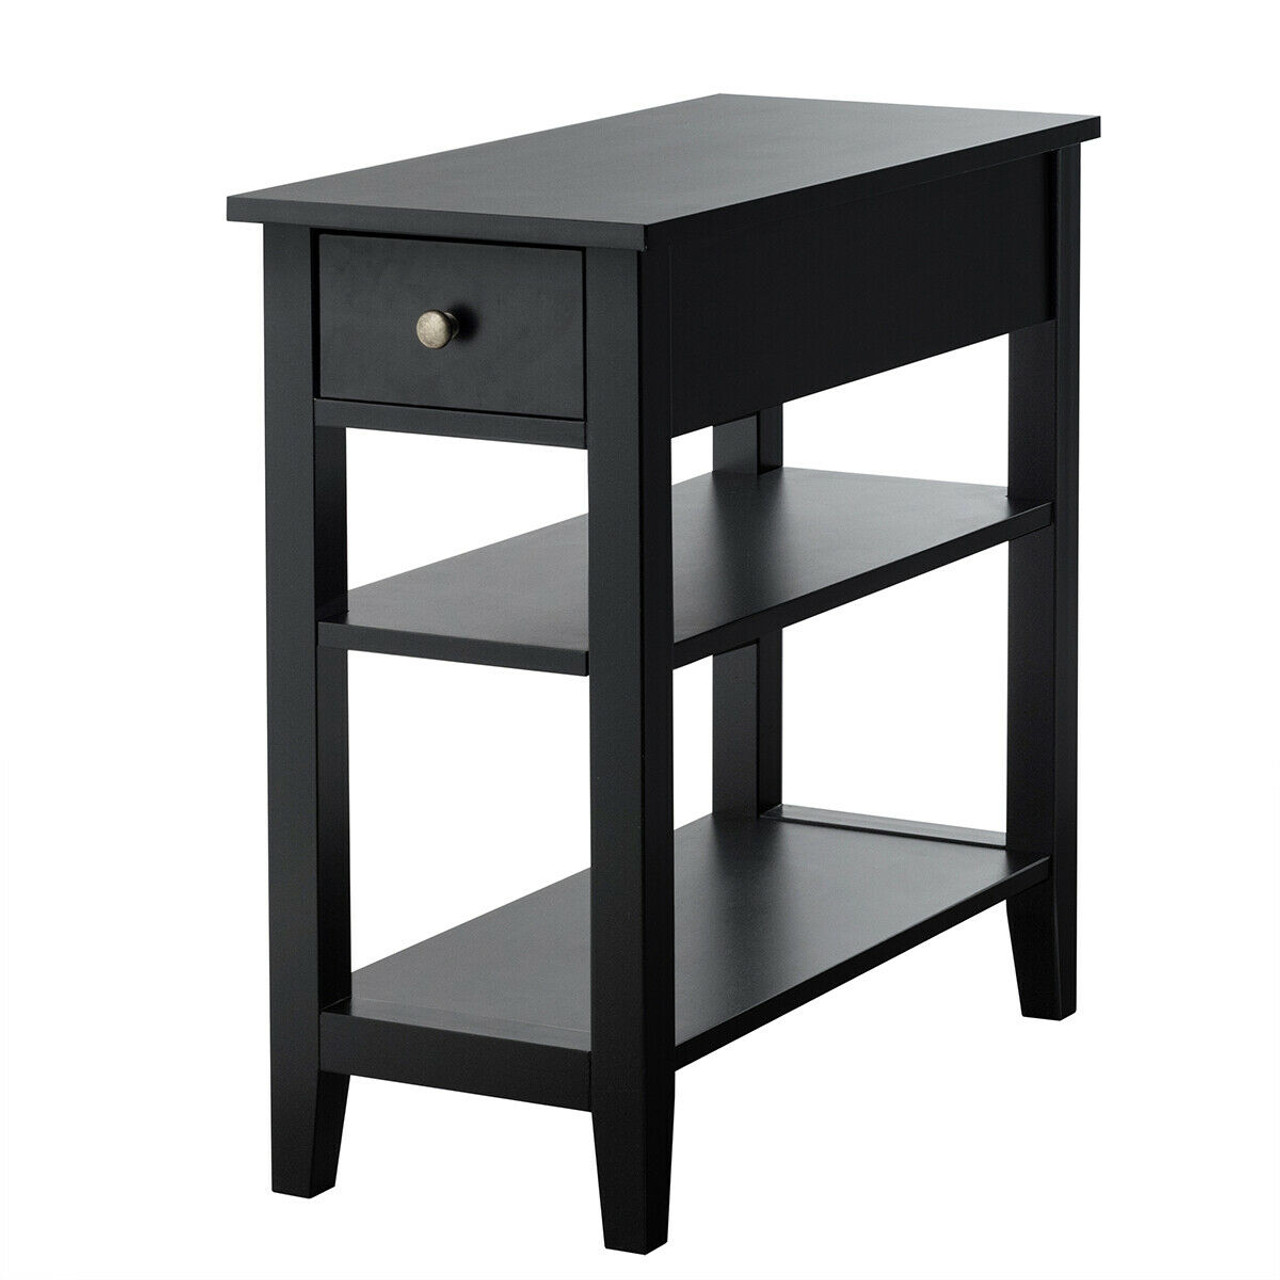 3 Tier Nightstand Bedside Table Sofa Side With Double Shelves Drawer Black Hw61591bk